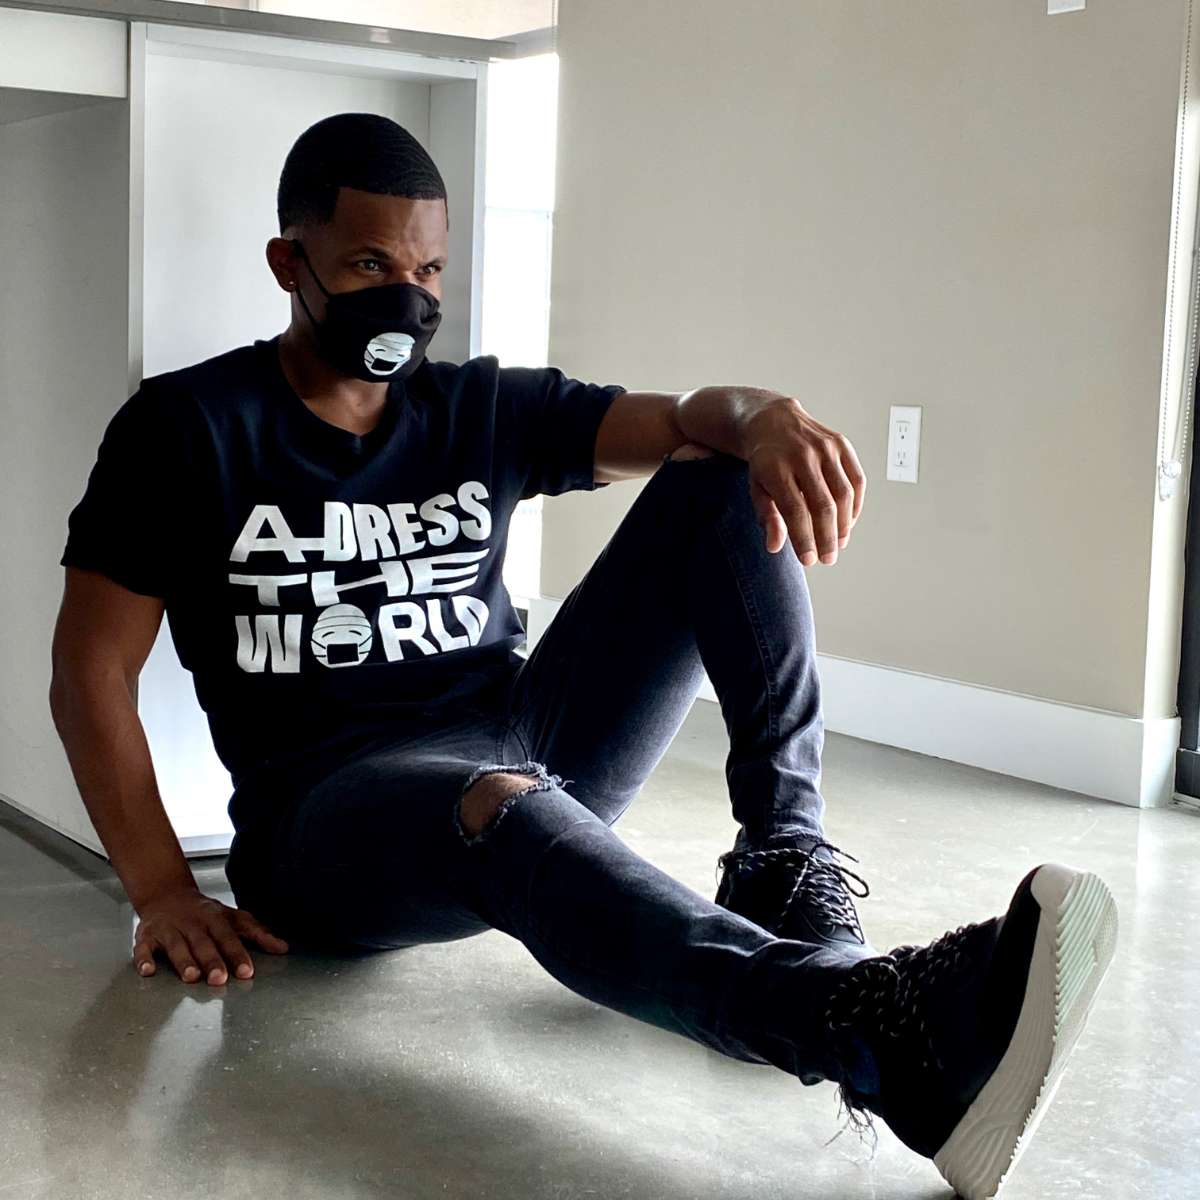 Check out this amazing socially conscious gear by Thread Haus...